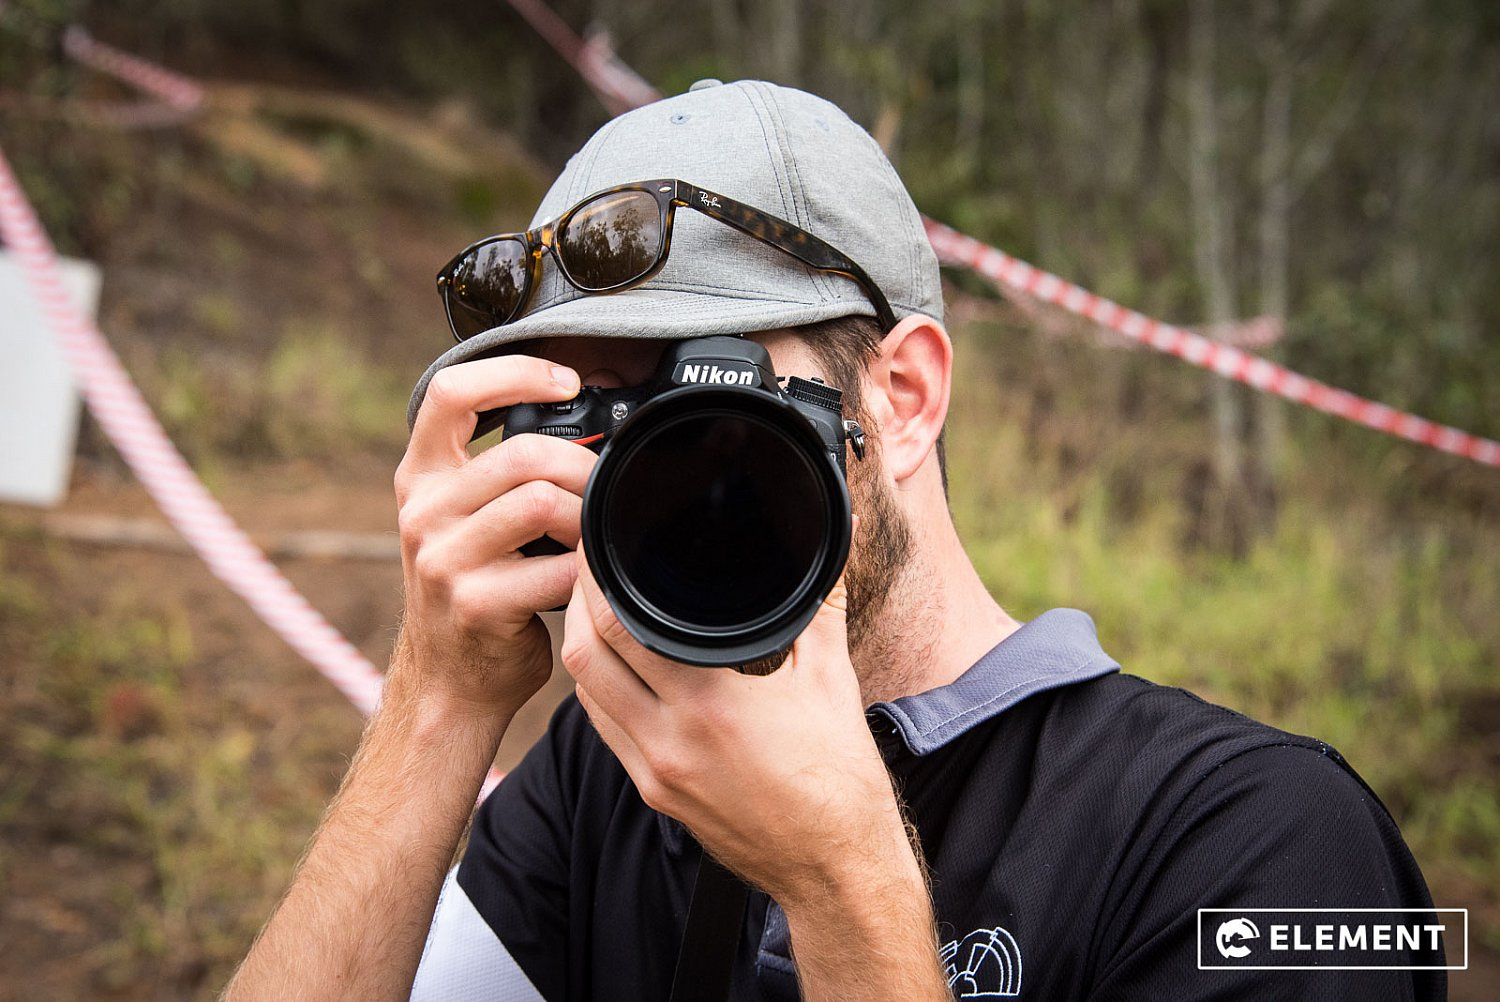 MTB Ride and Shoot Photography Workshop (1st March 2020) | LWR_9202_Lachlan_Ryan_17-07-2016.jpg